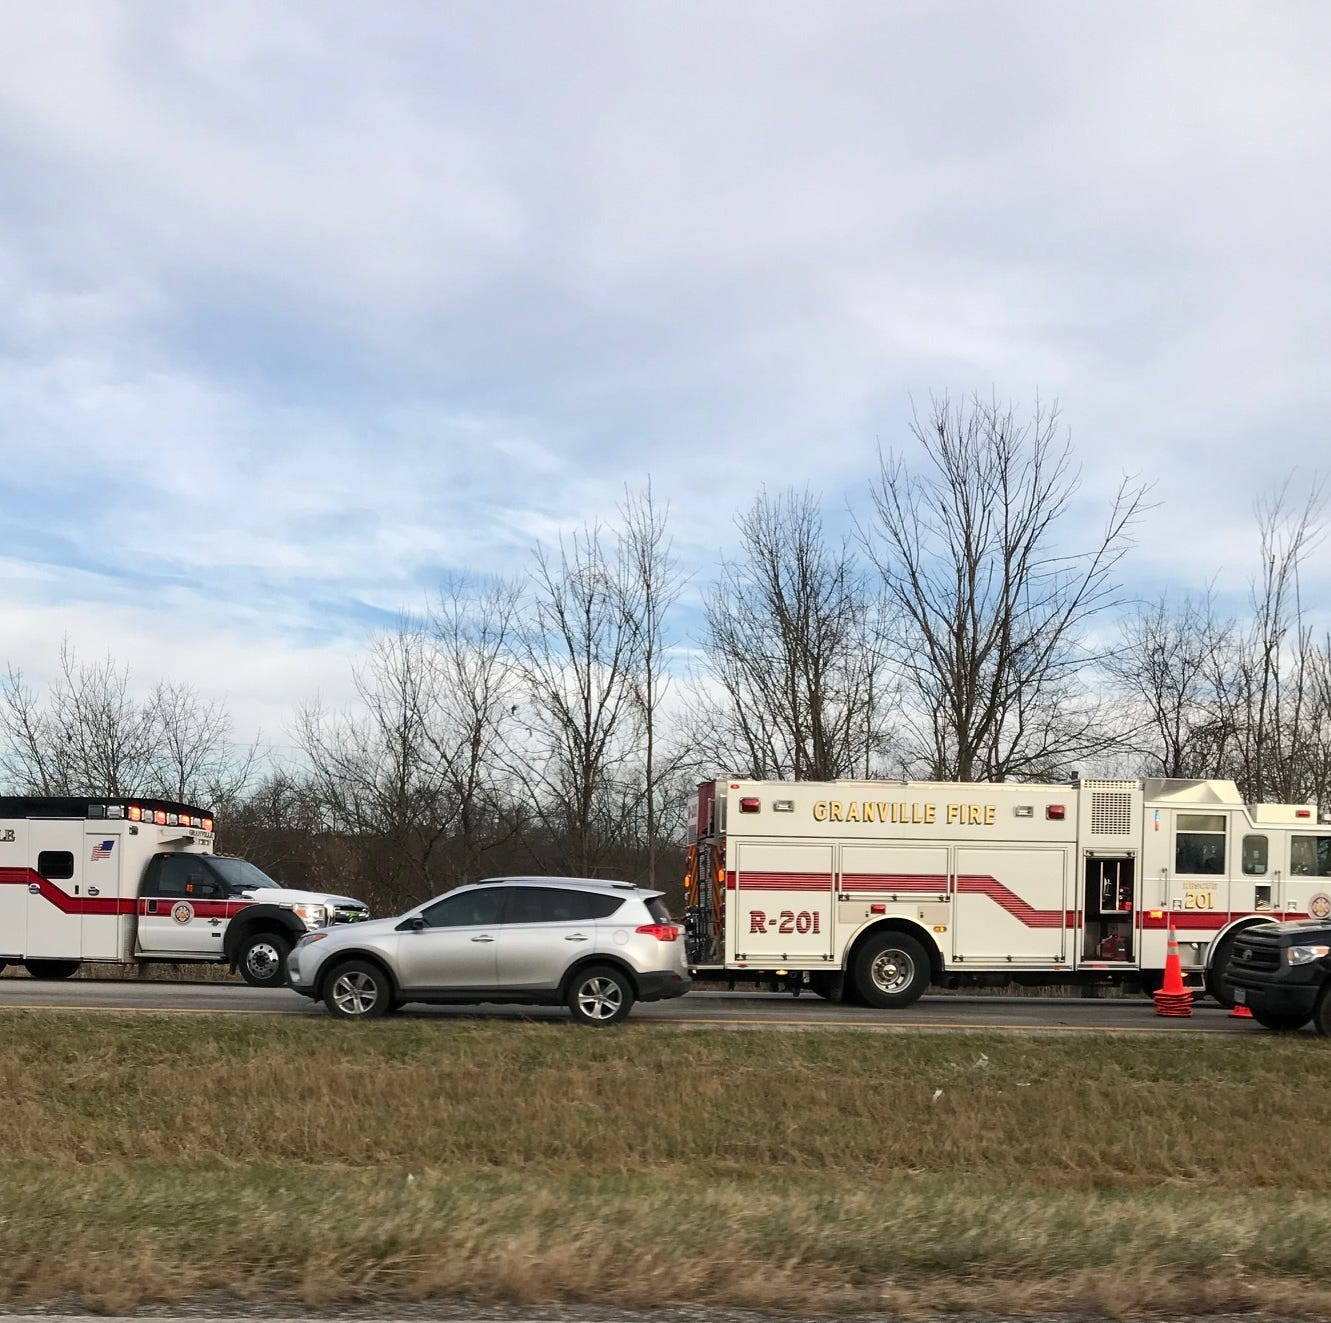 Construction, accident snarls traffic on westbound Ohio 16